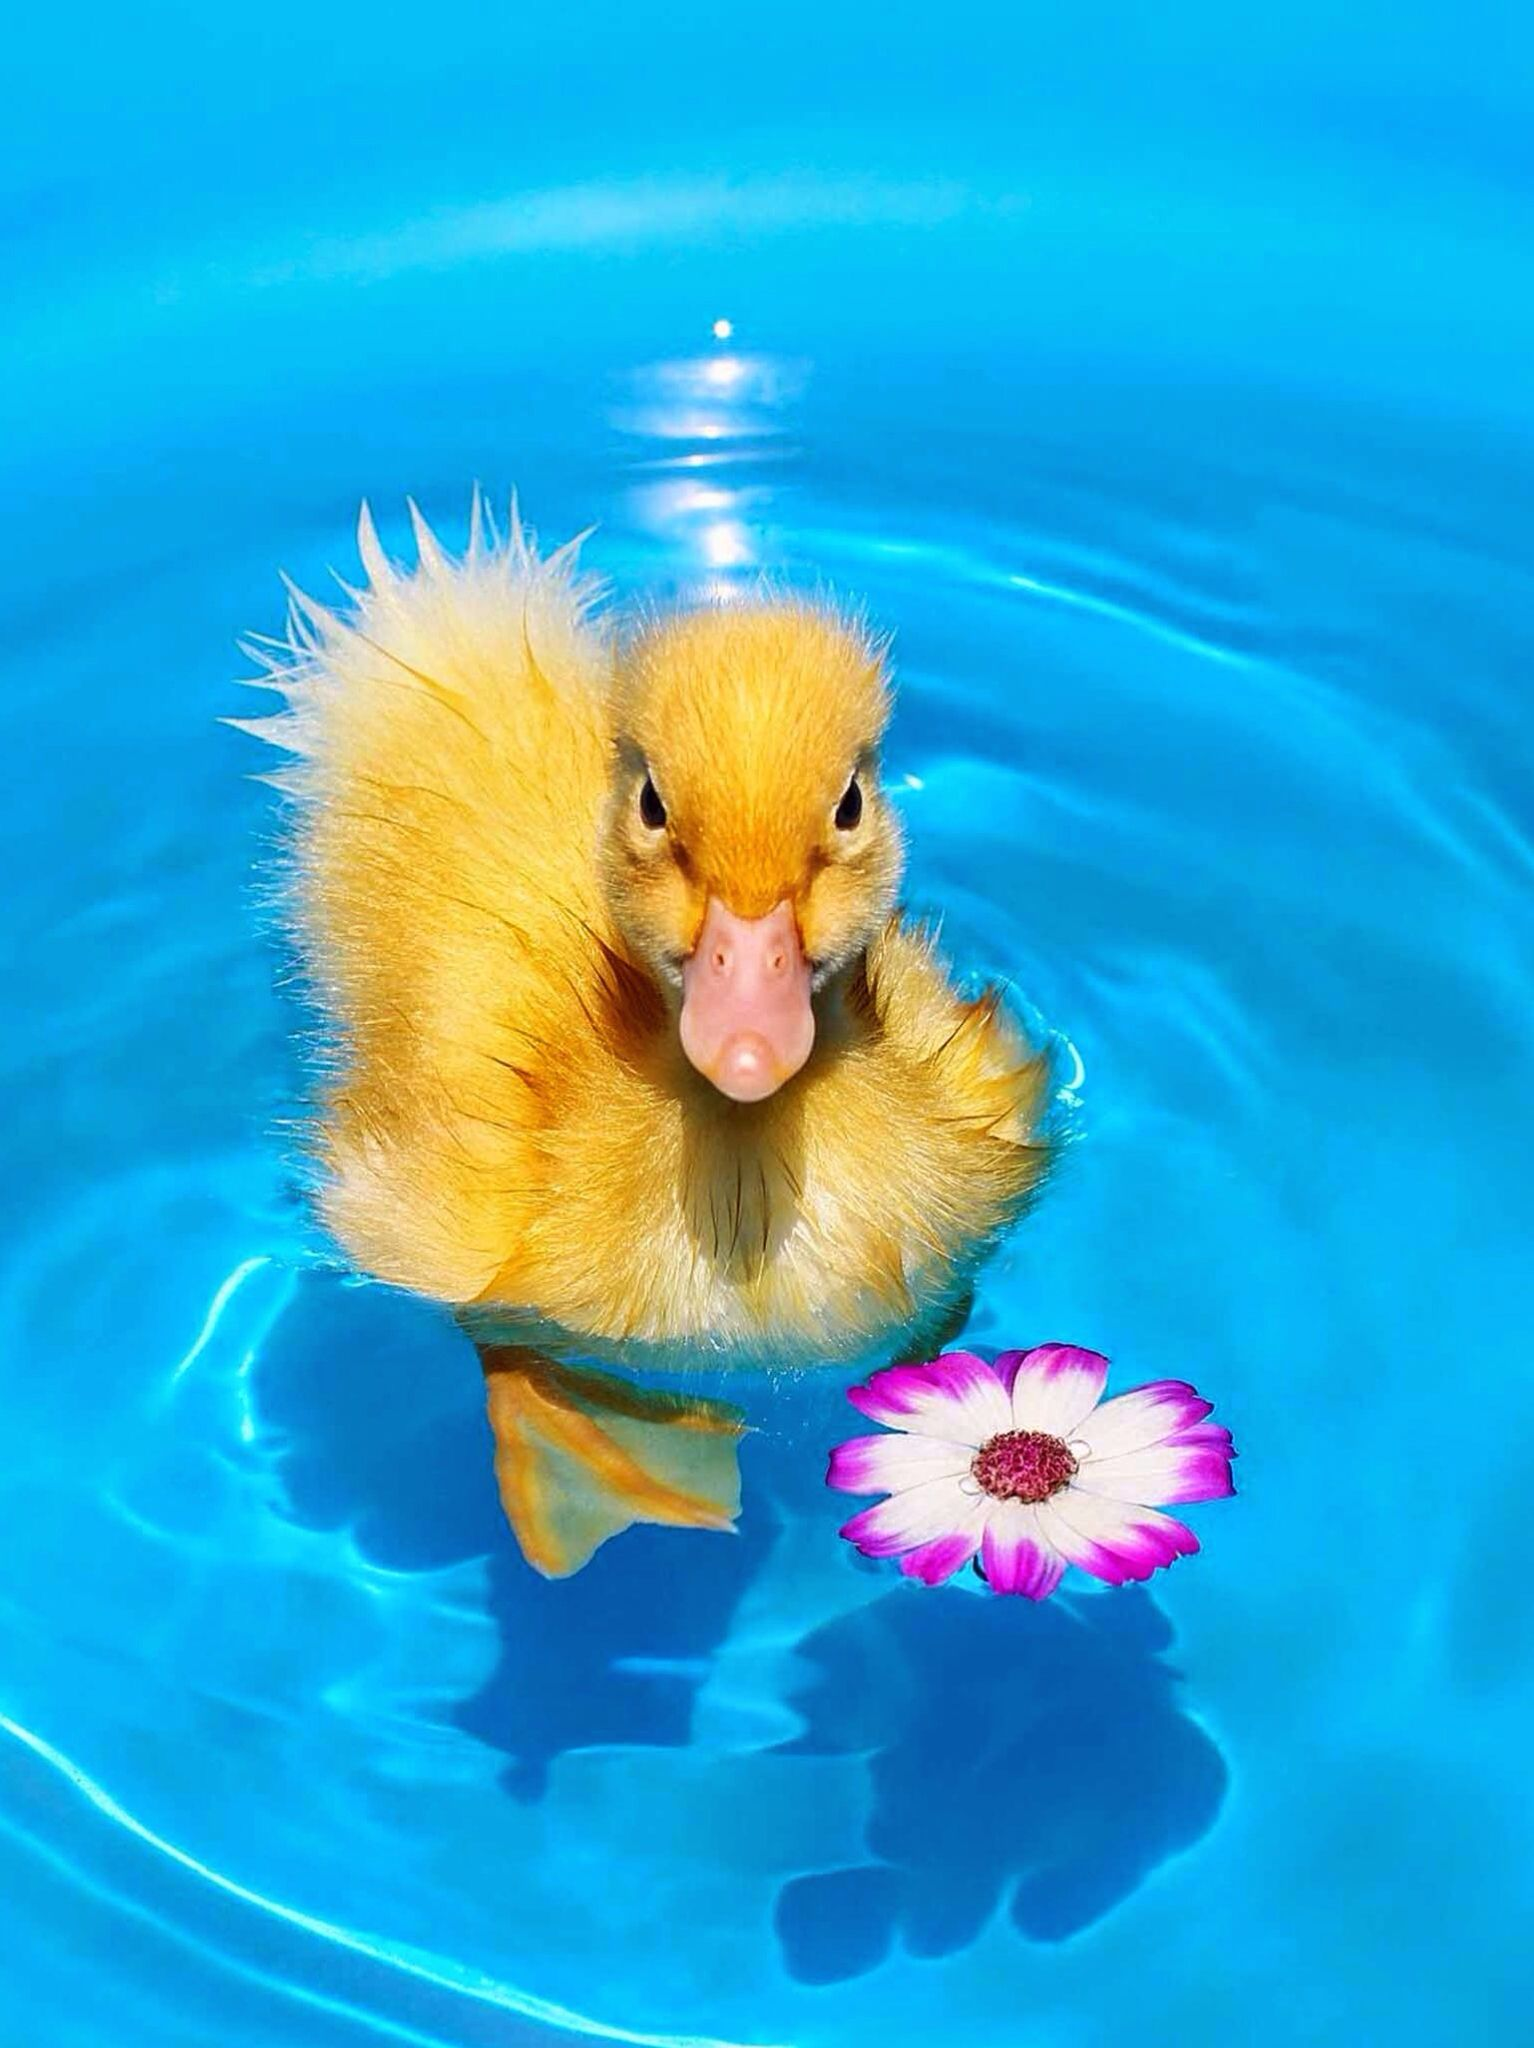 Cute baby duck (With images) Pet chickens, Ducklings